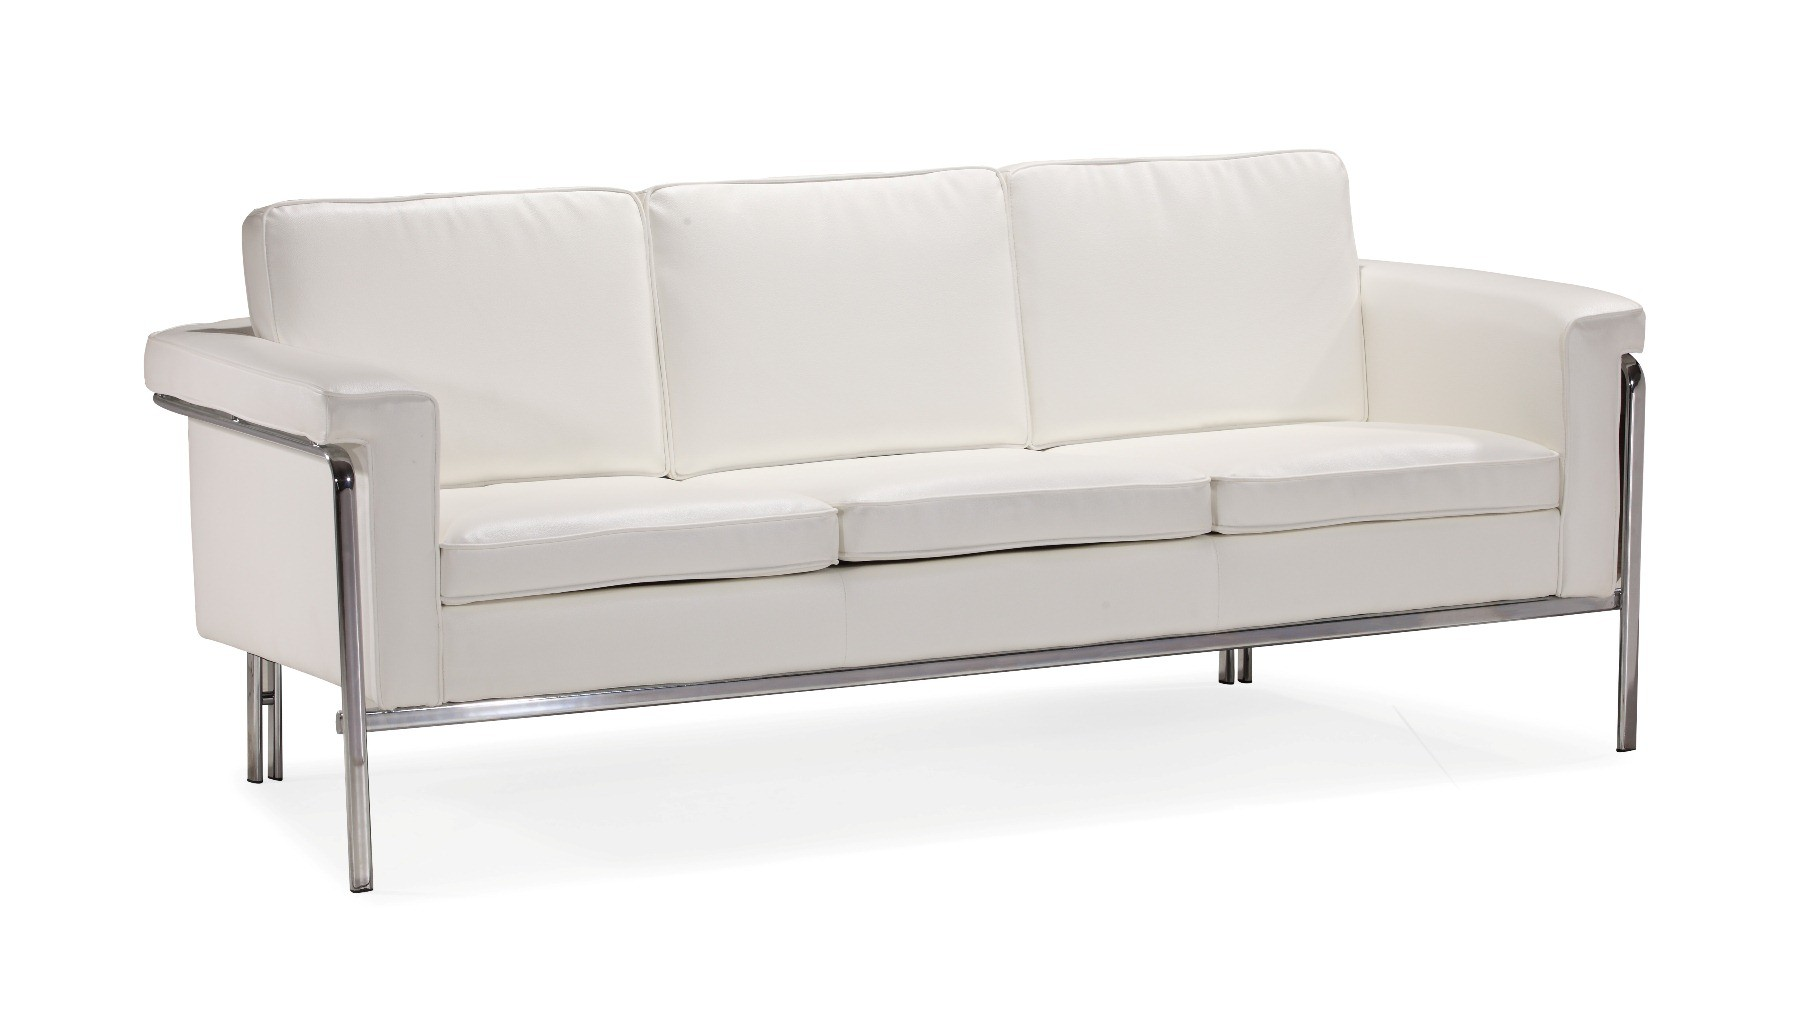 White or Black Leather Contemporary Sofa with Chrome Legs and Frame ...